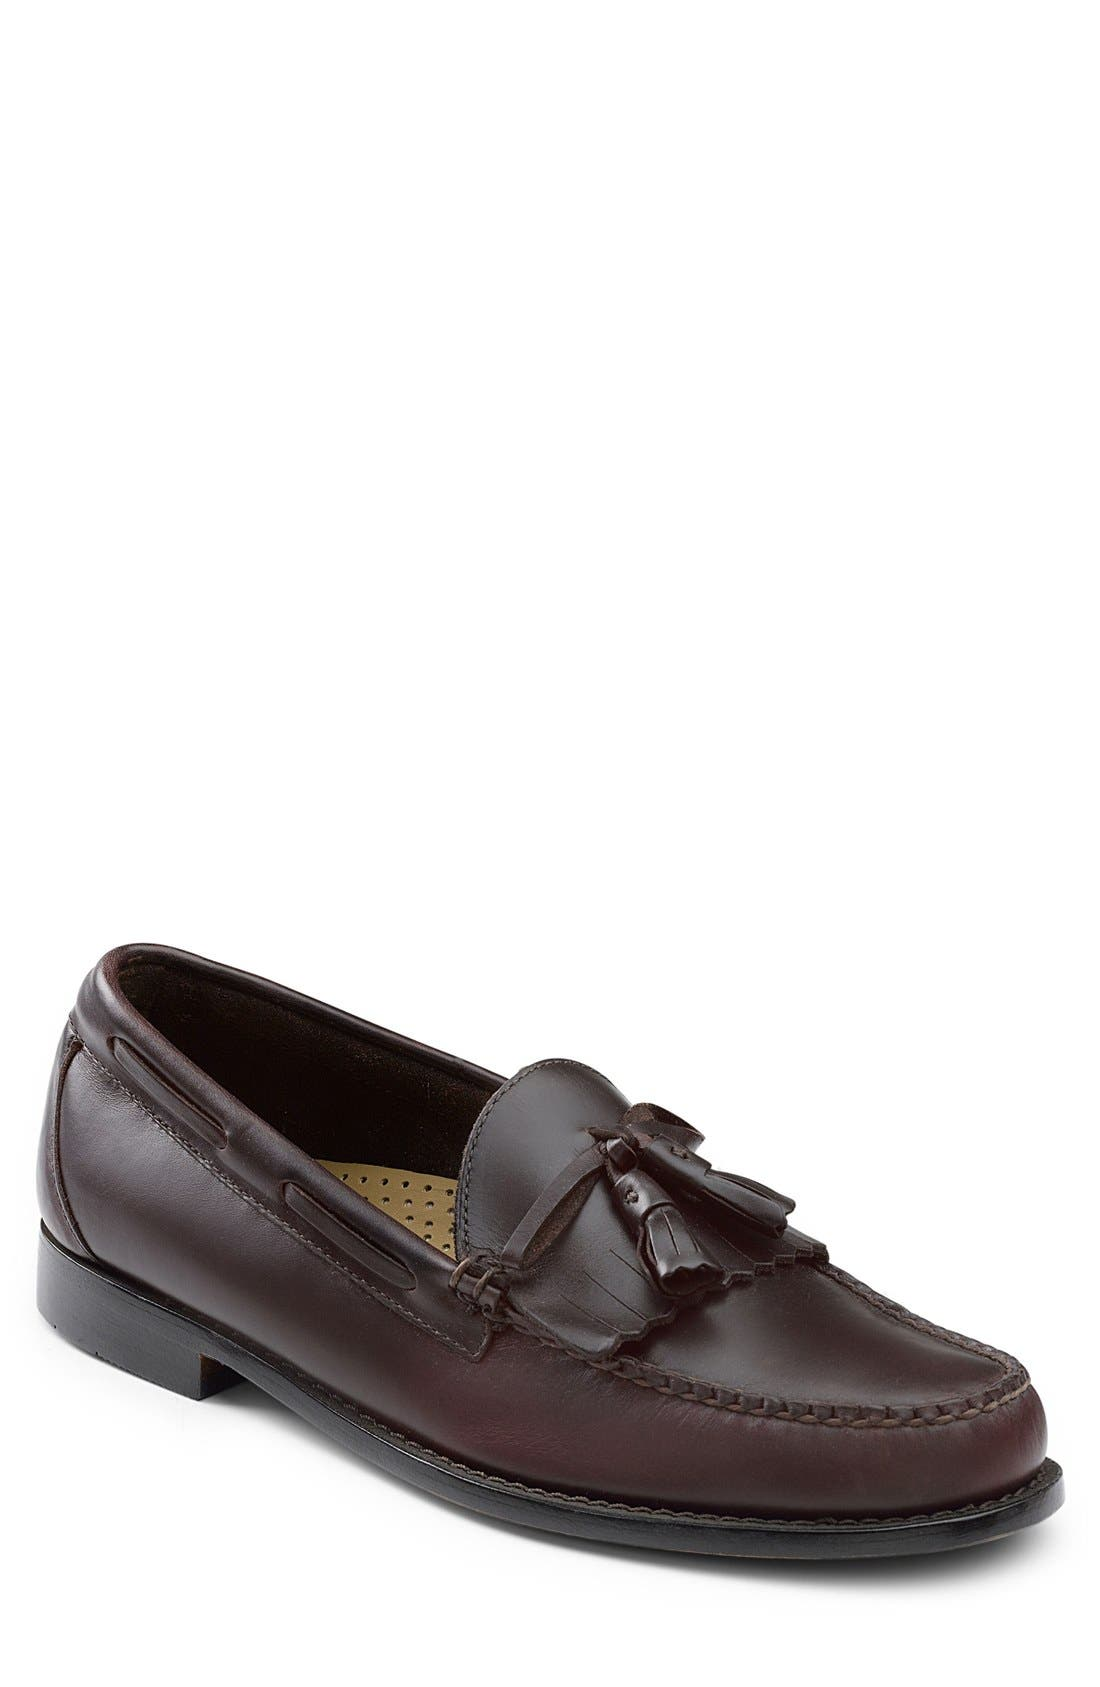 'Lawrence' Tassel Loafer,                         Main,                         color, Burgundy